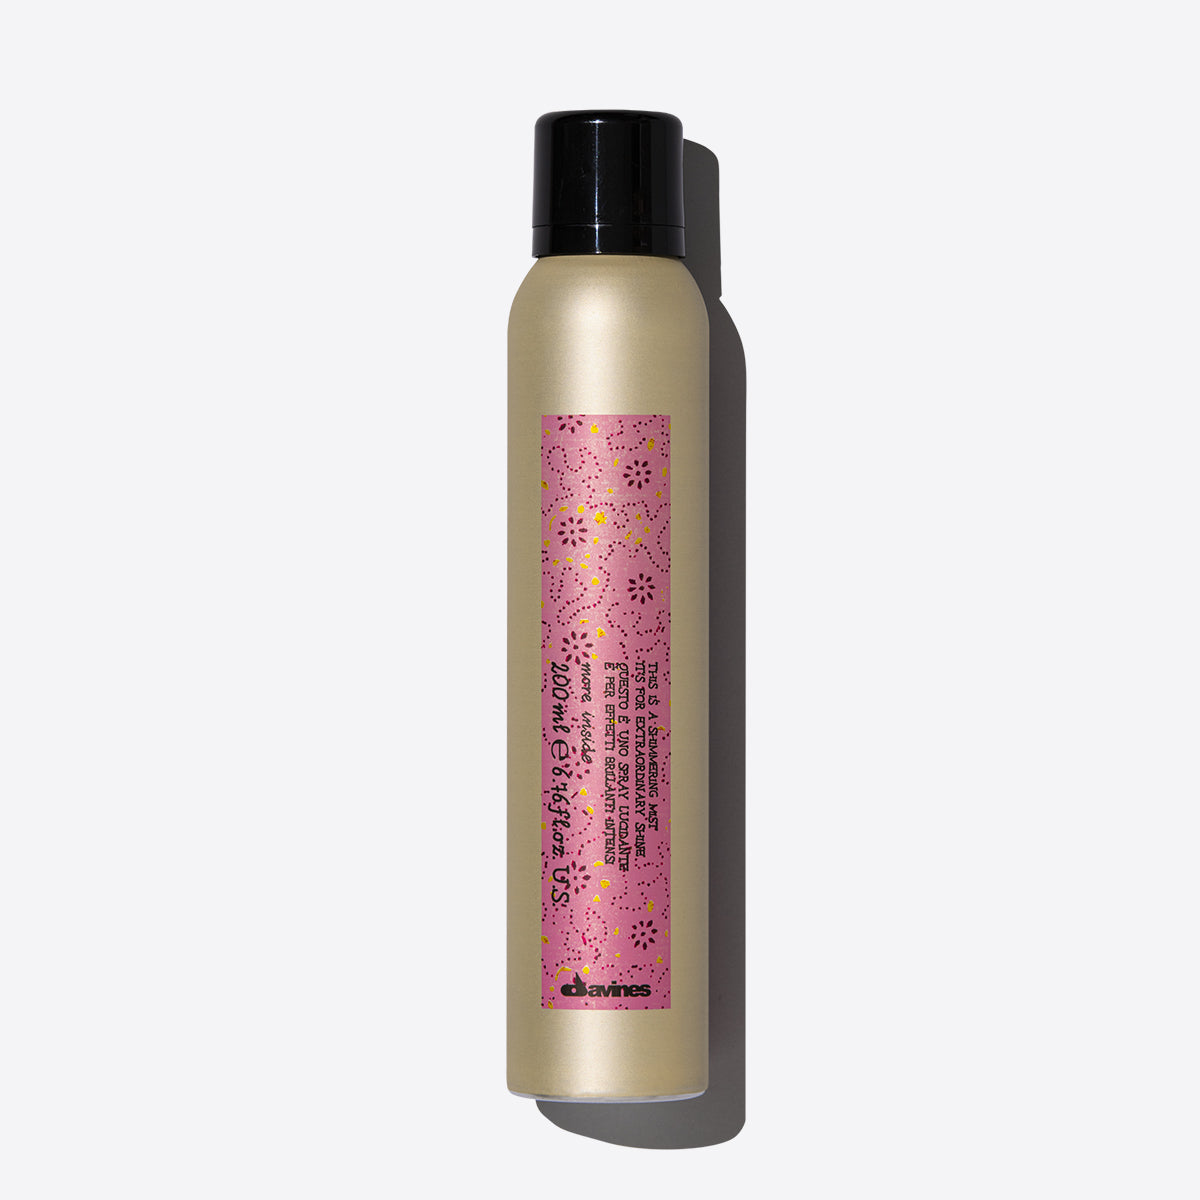 This Is A Shimmering Mist 1  200 ml / 6,76 fl.oz.Davines